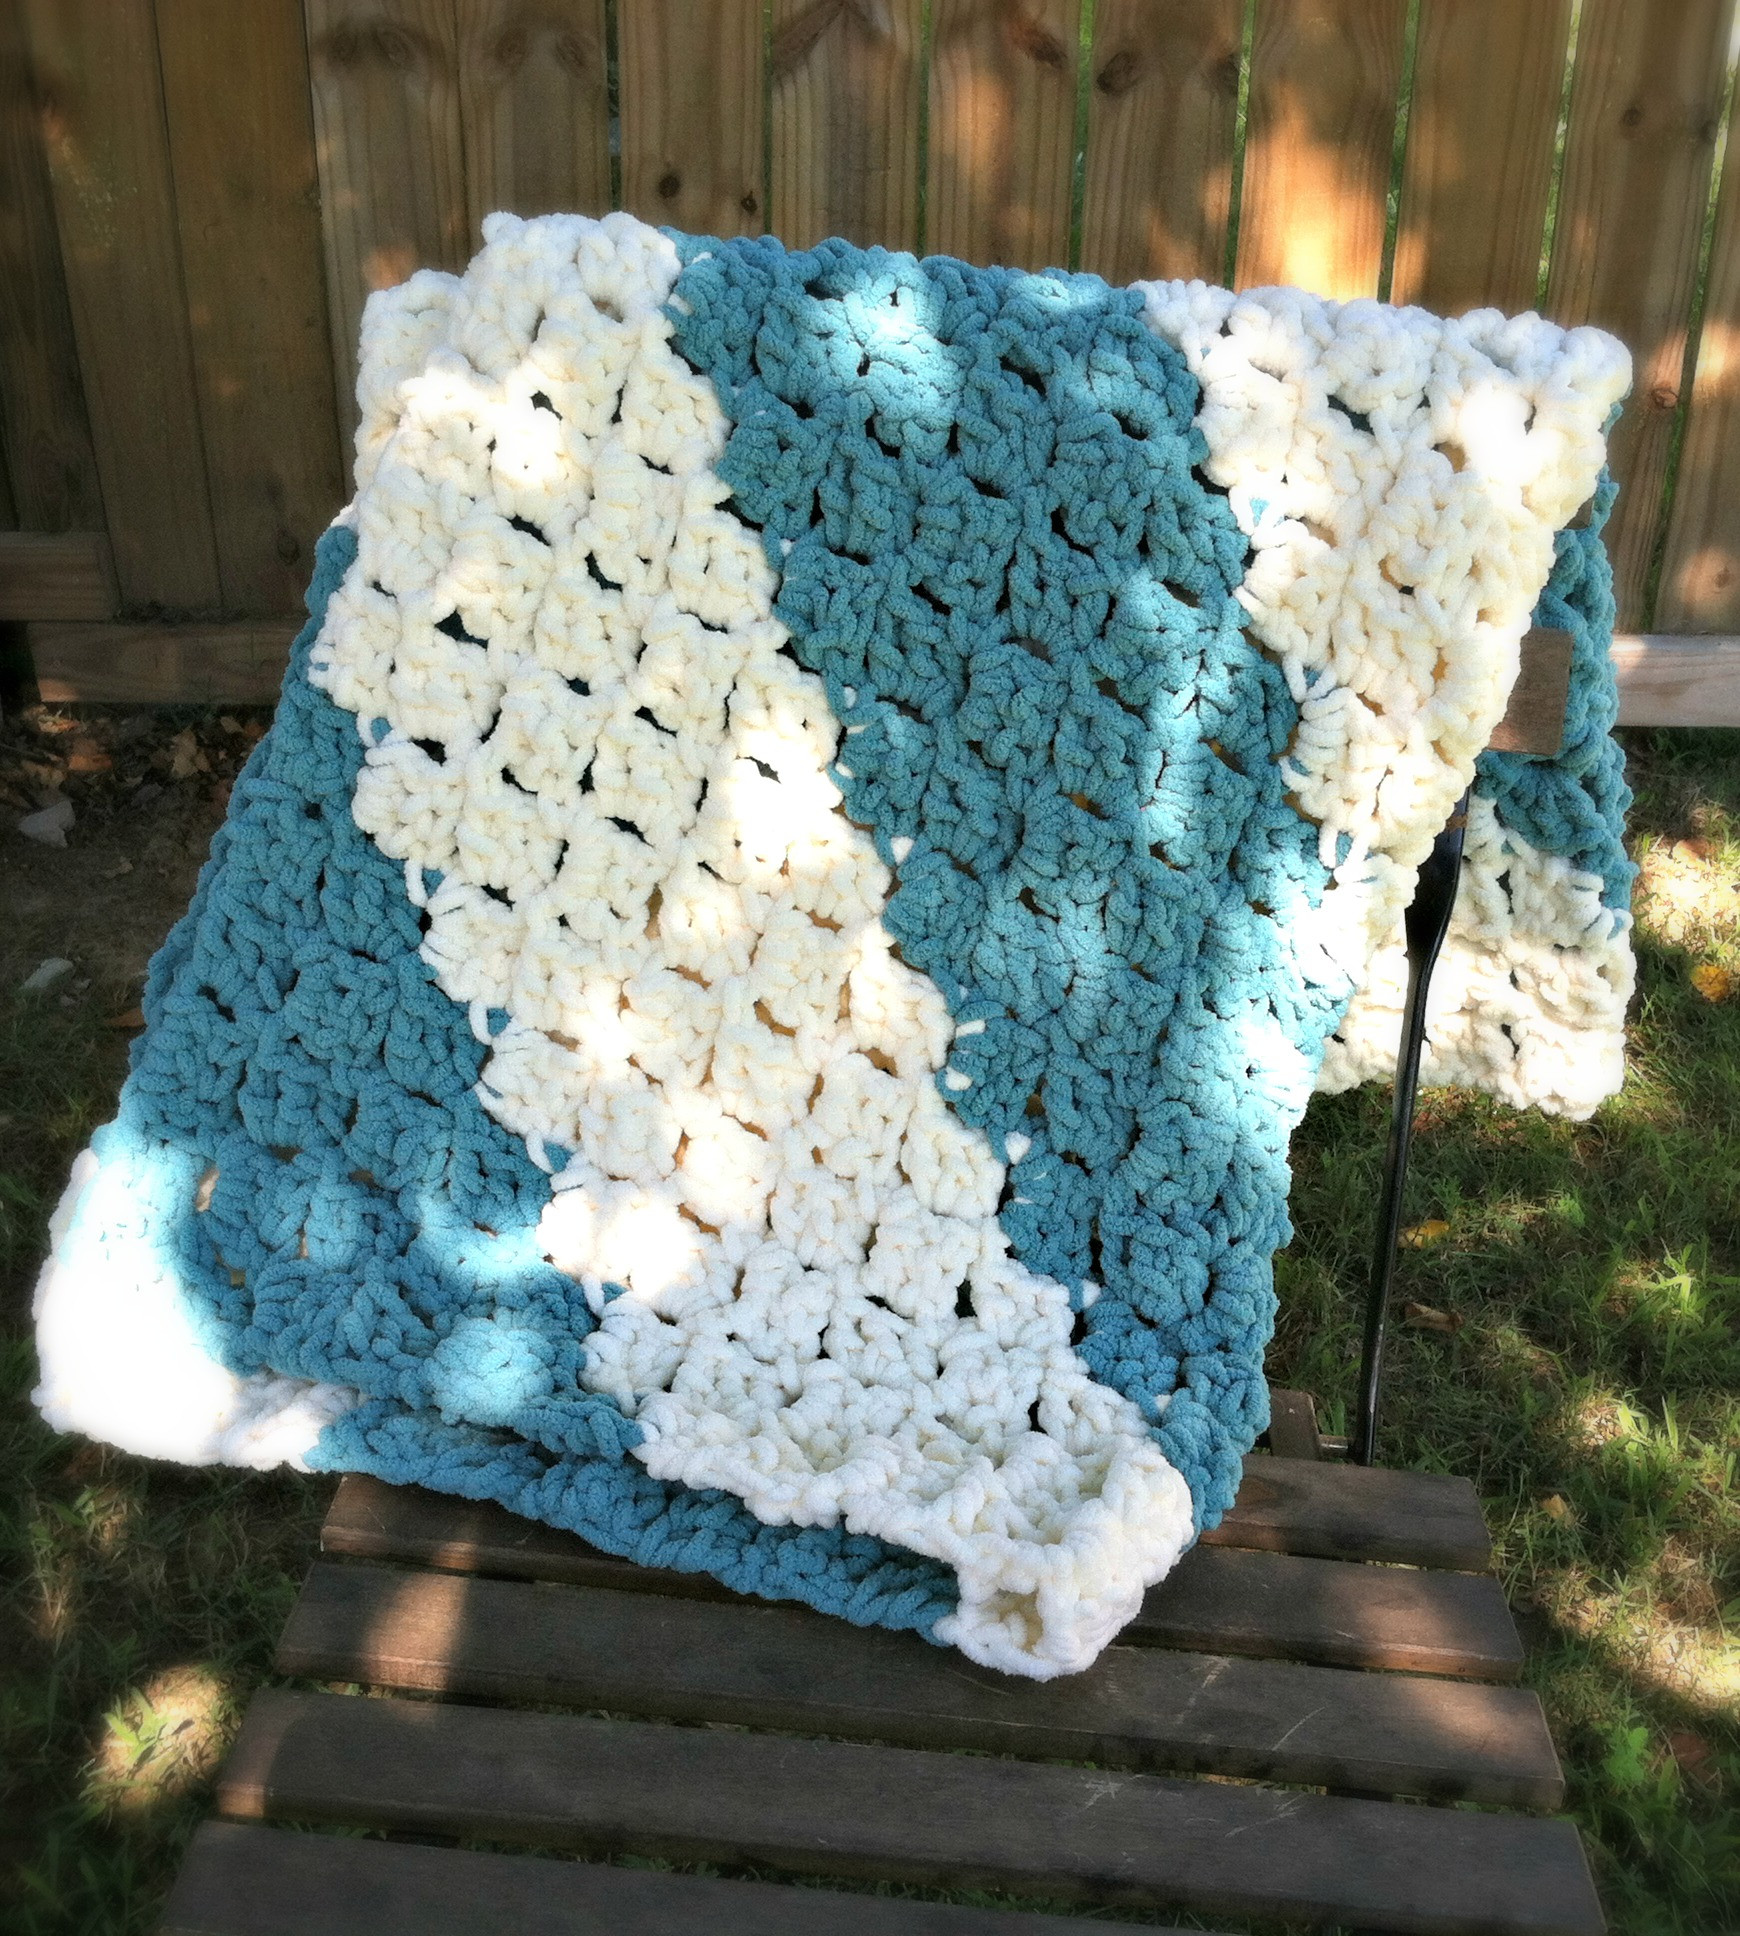 Blanket Yarn Patterns Lovely Quick and Easy Baby Blanket Free Crochet Pattern Of Superb 45 Pictures Blanket Yarn Patterns